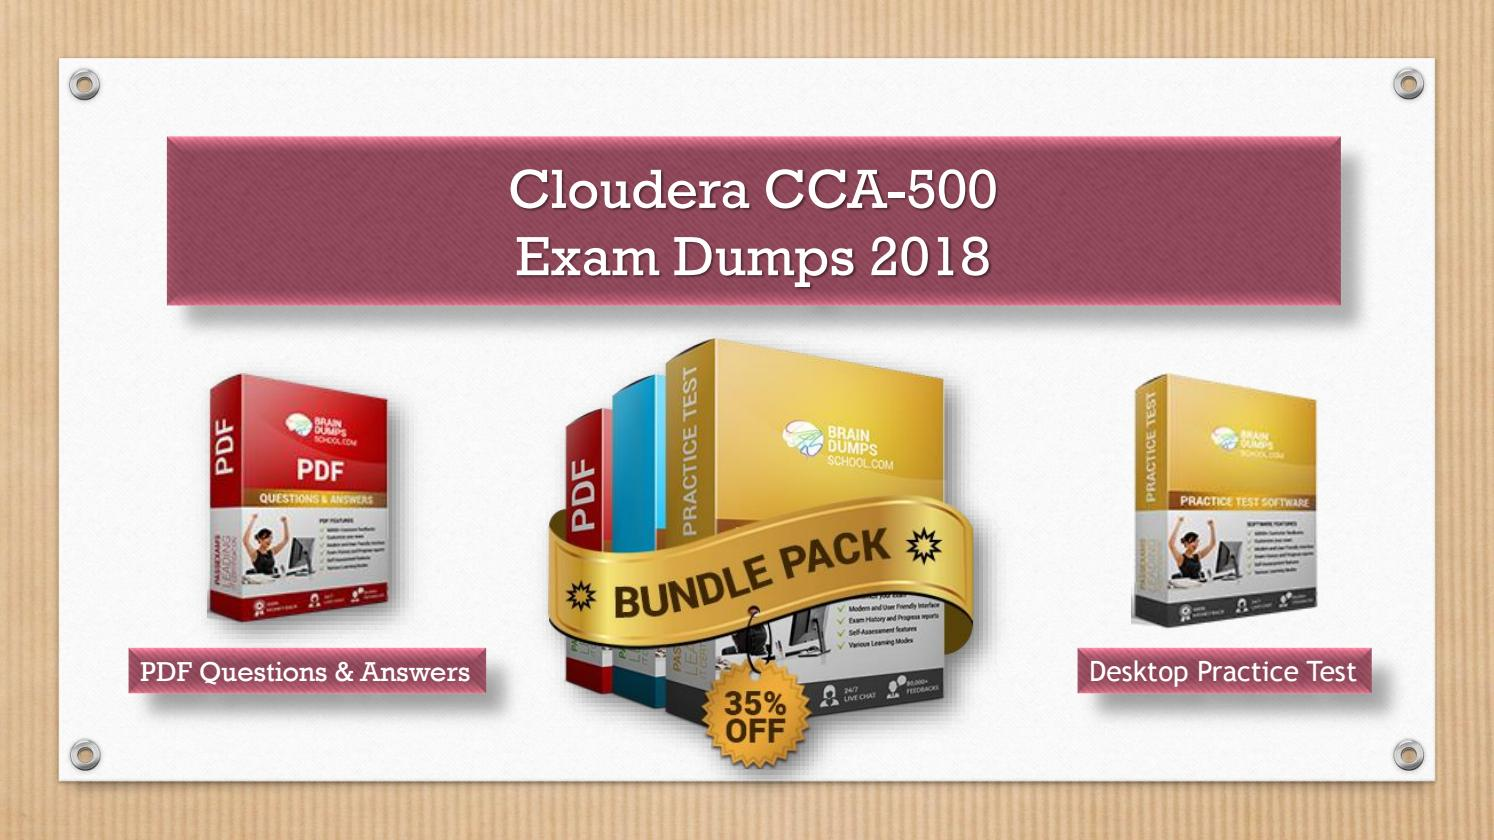 Valid Cca 500 Questions Dumps And Tips To Pass Cloudera Cca 500 Exam